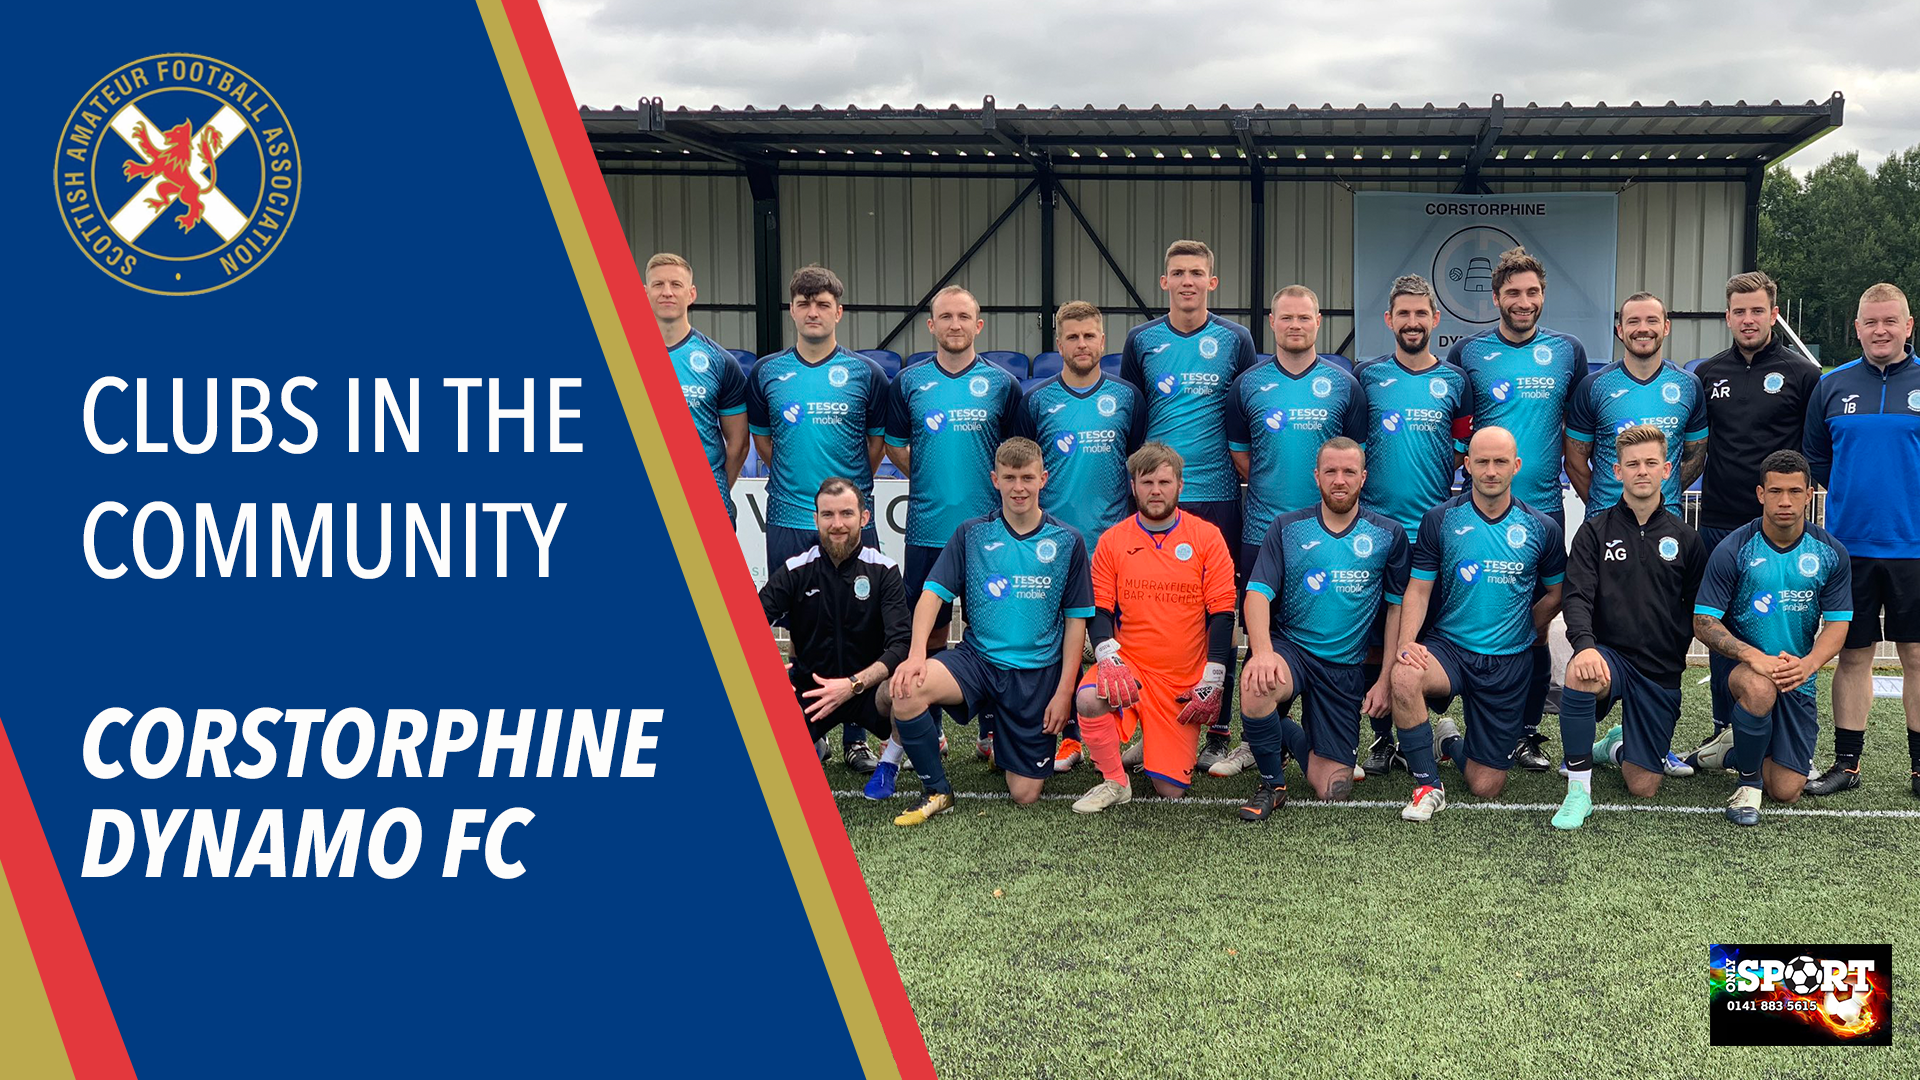 Clubs in the Community | Corstorphine Dynamo FC